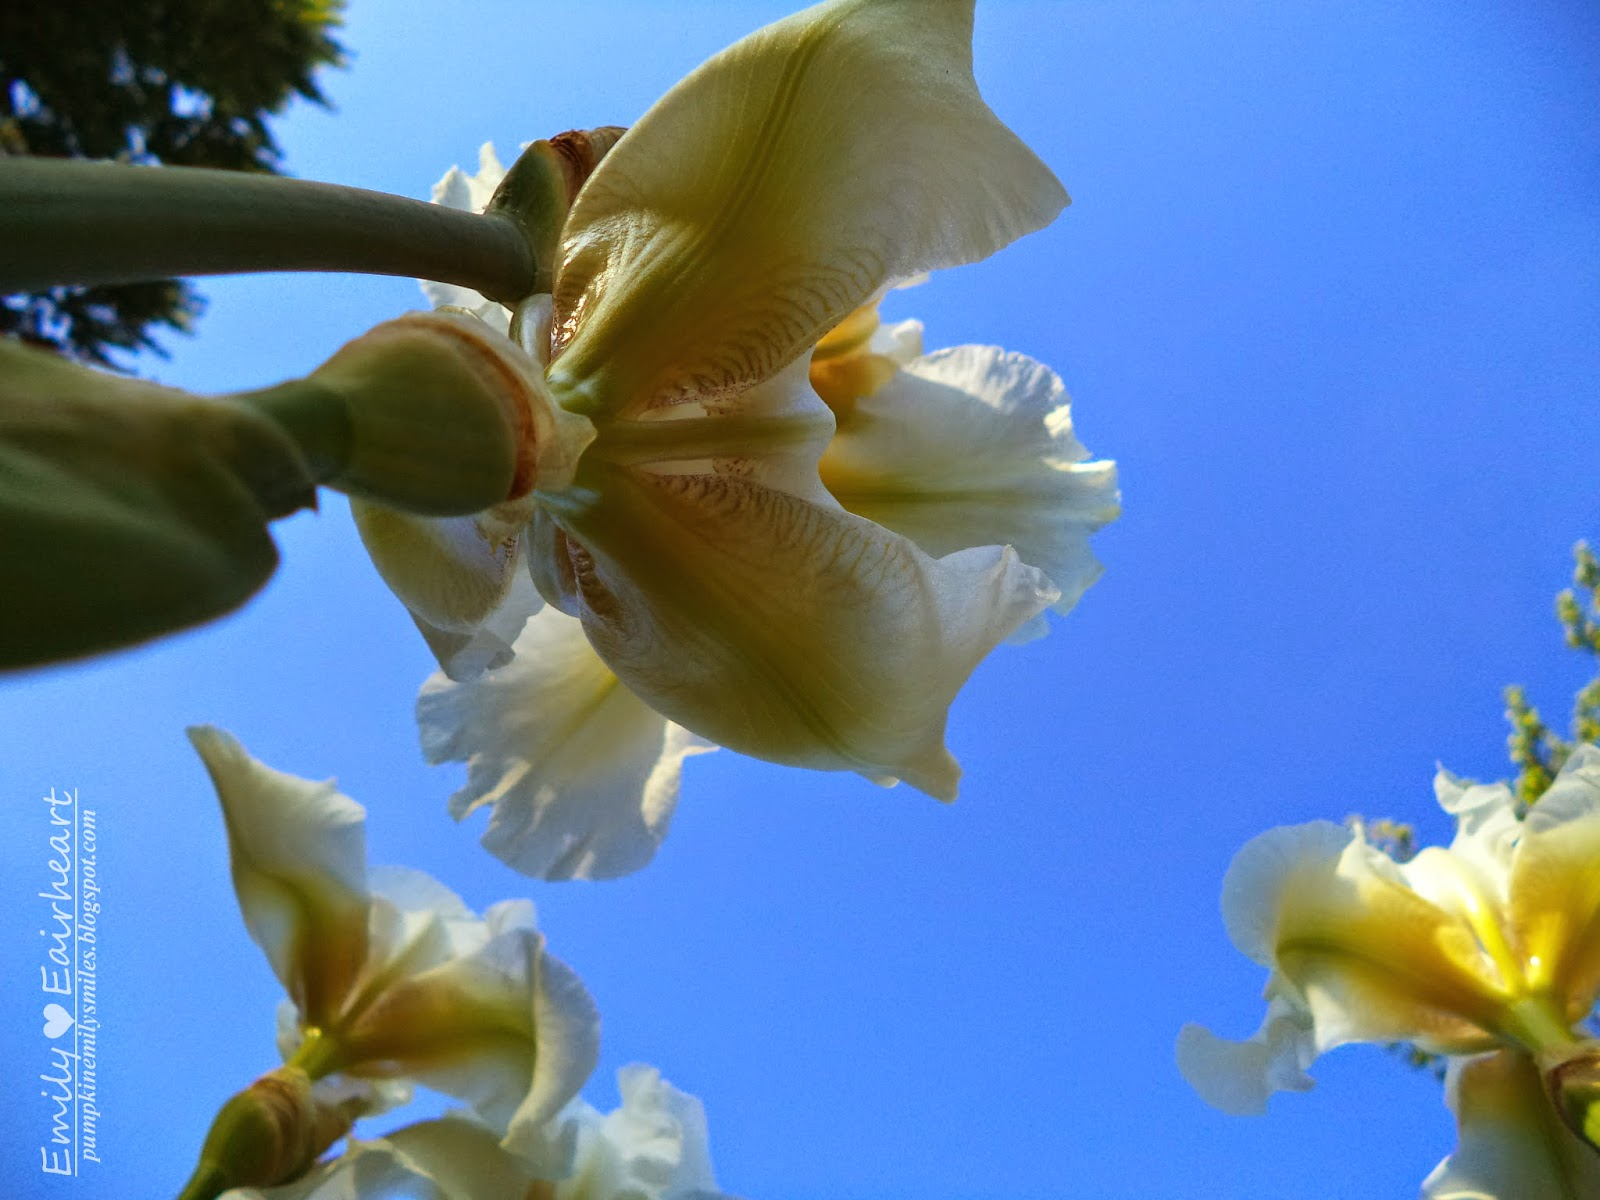 White Irises view from the bottom.